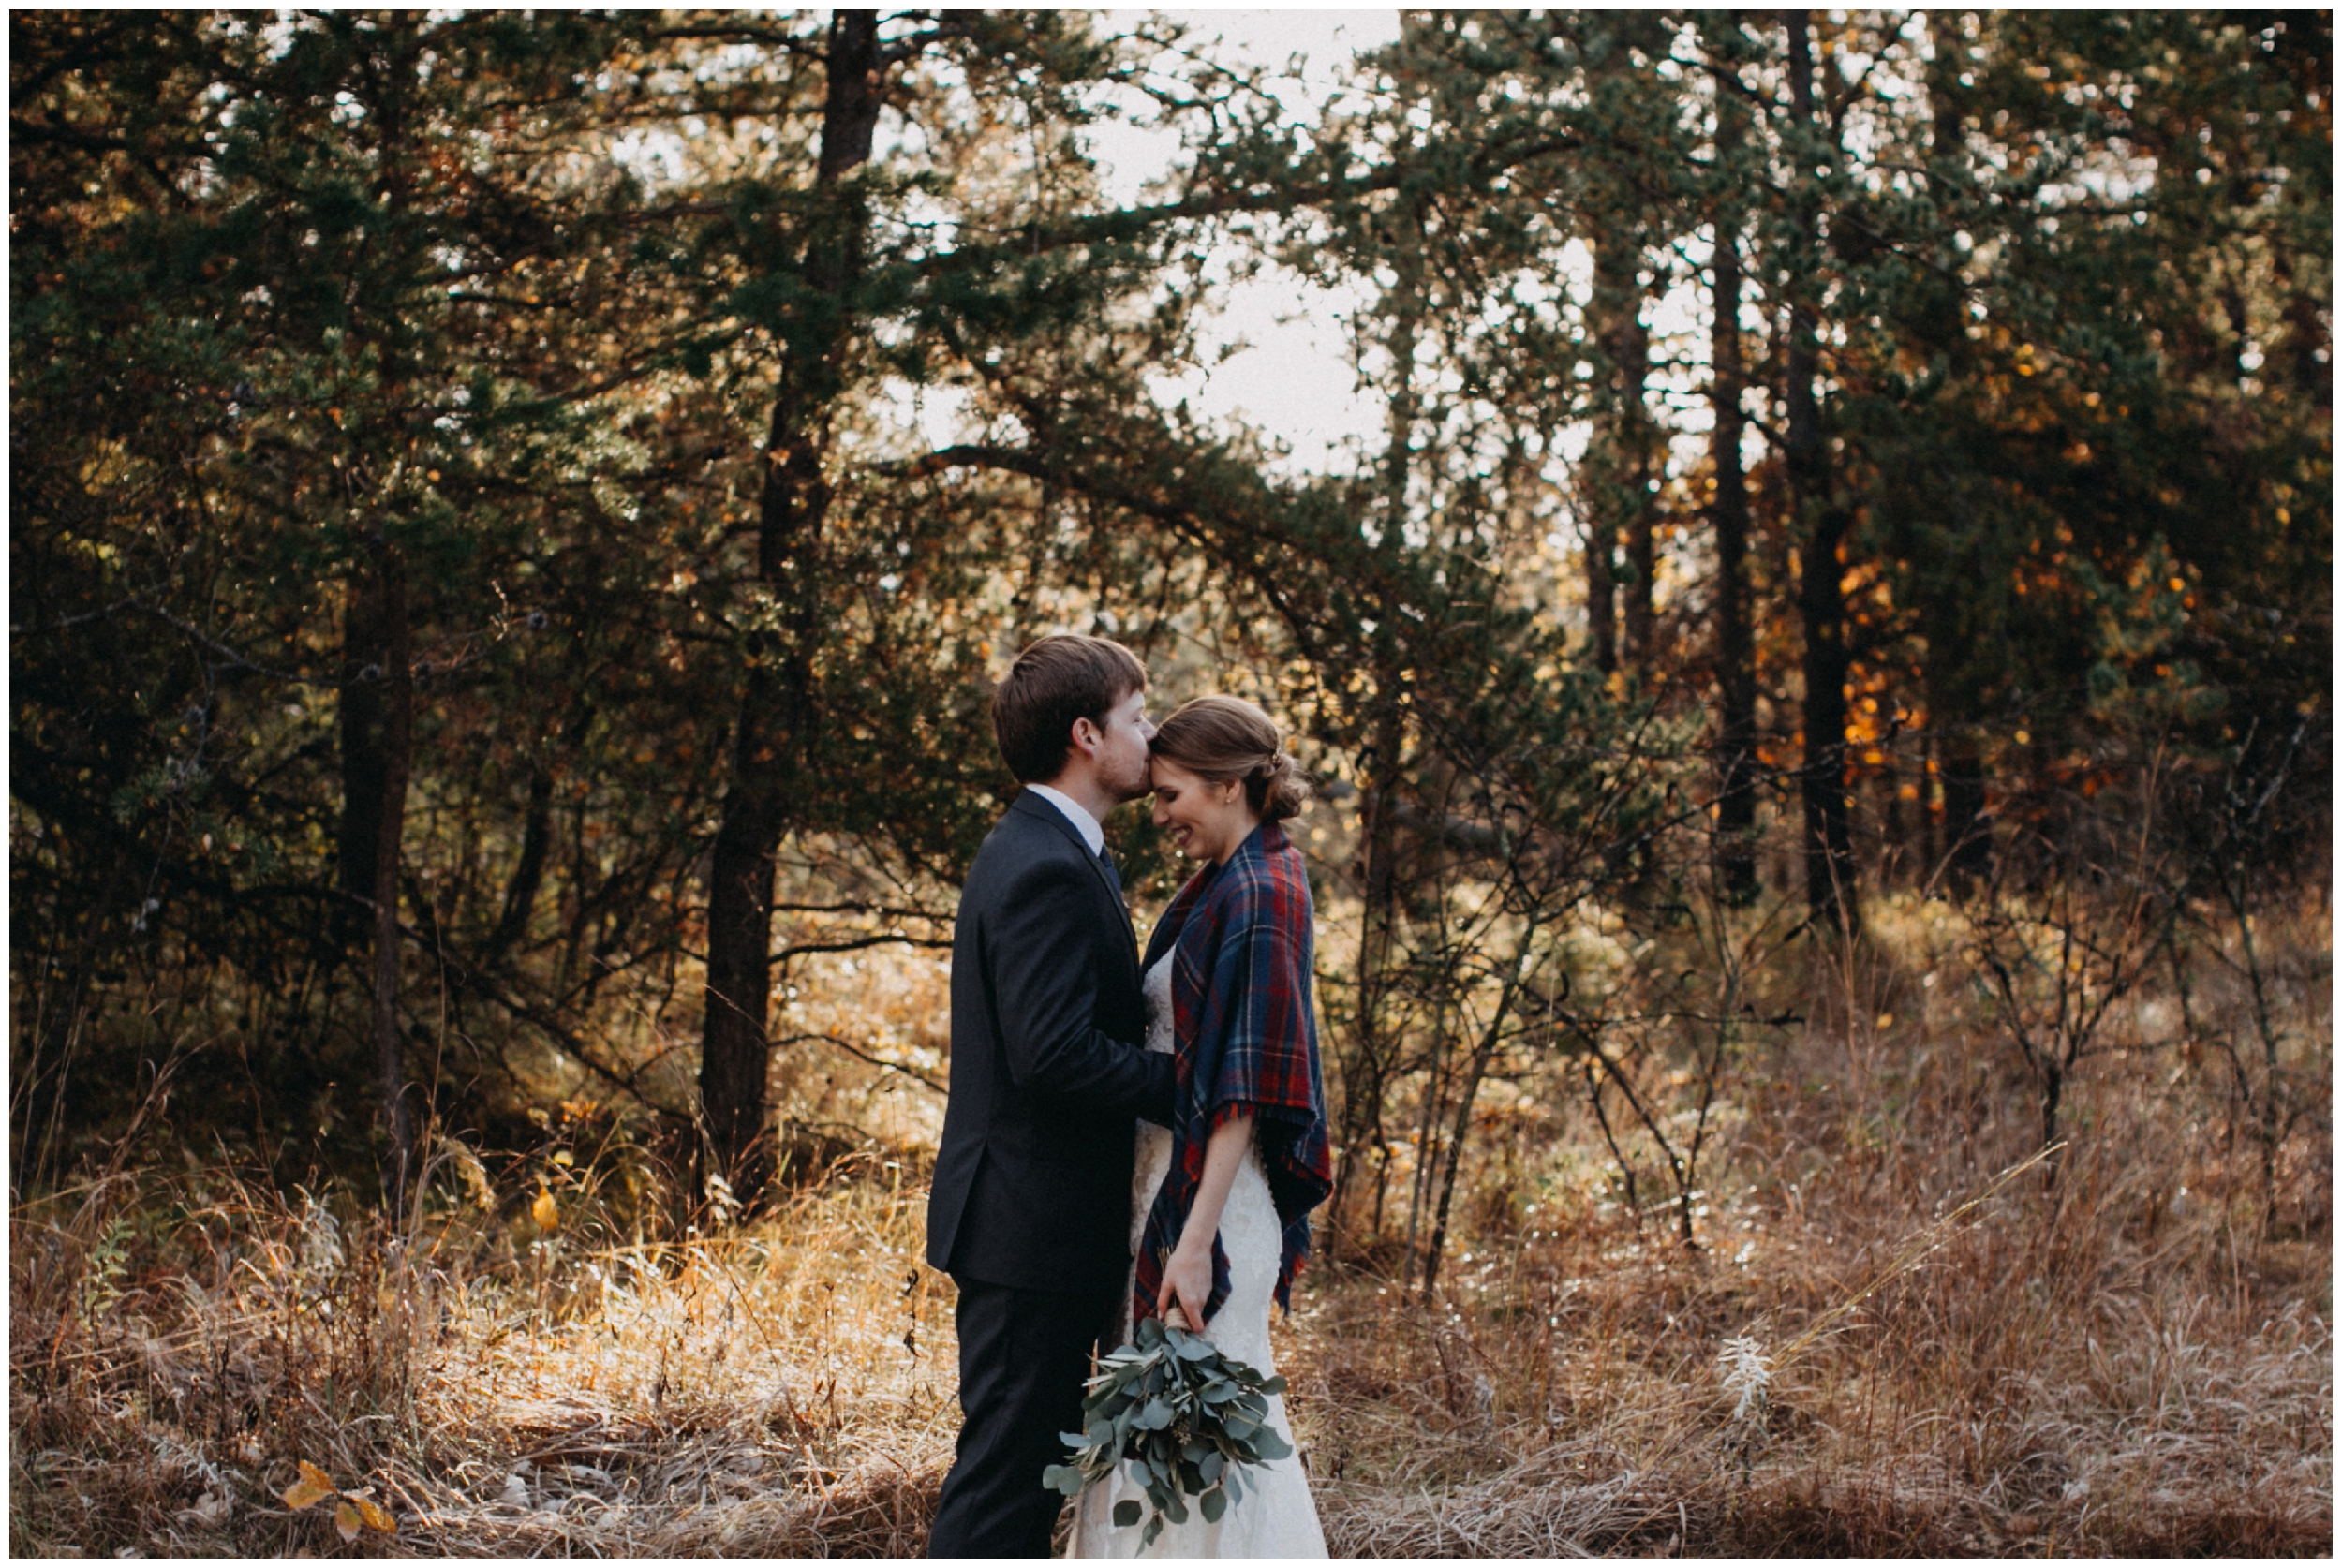 Intimate October wedding at the Northland Arboretum